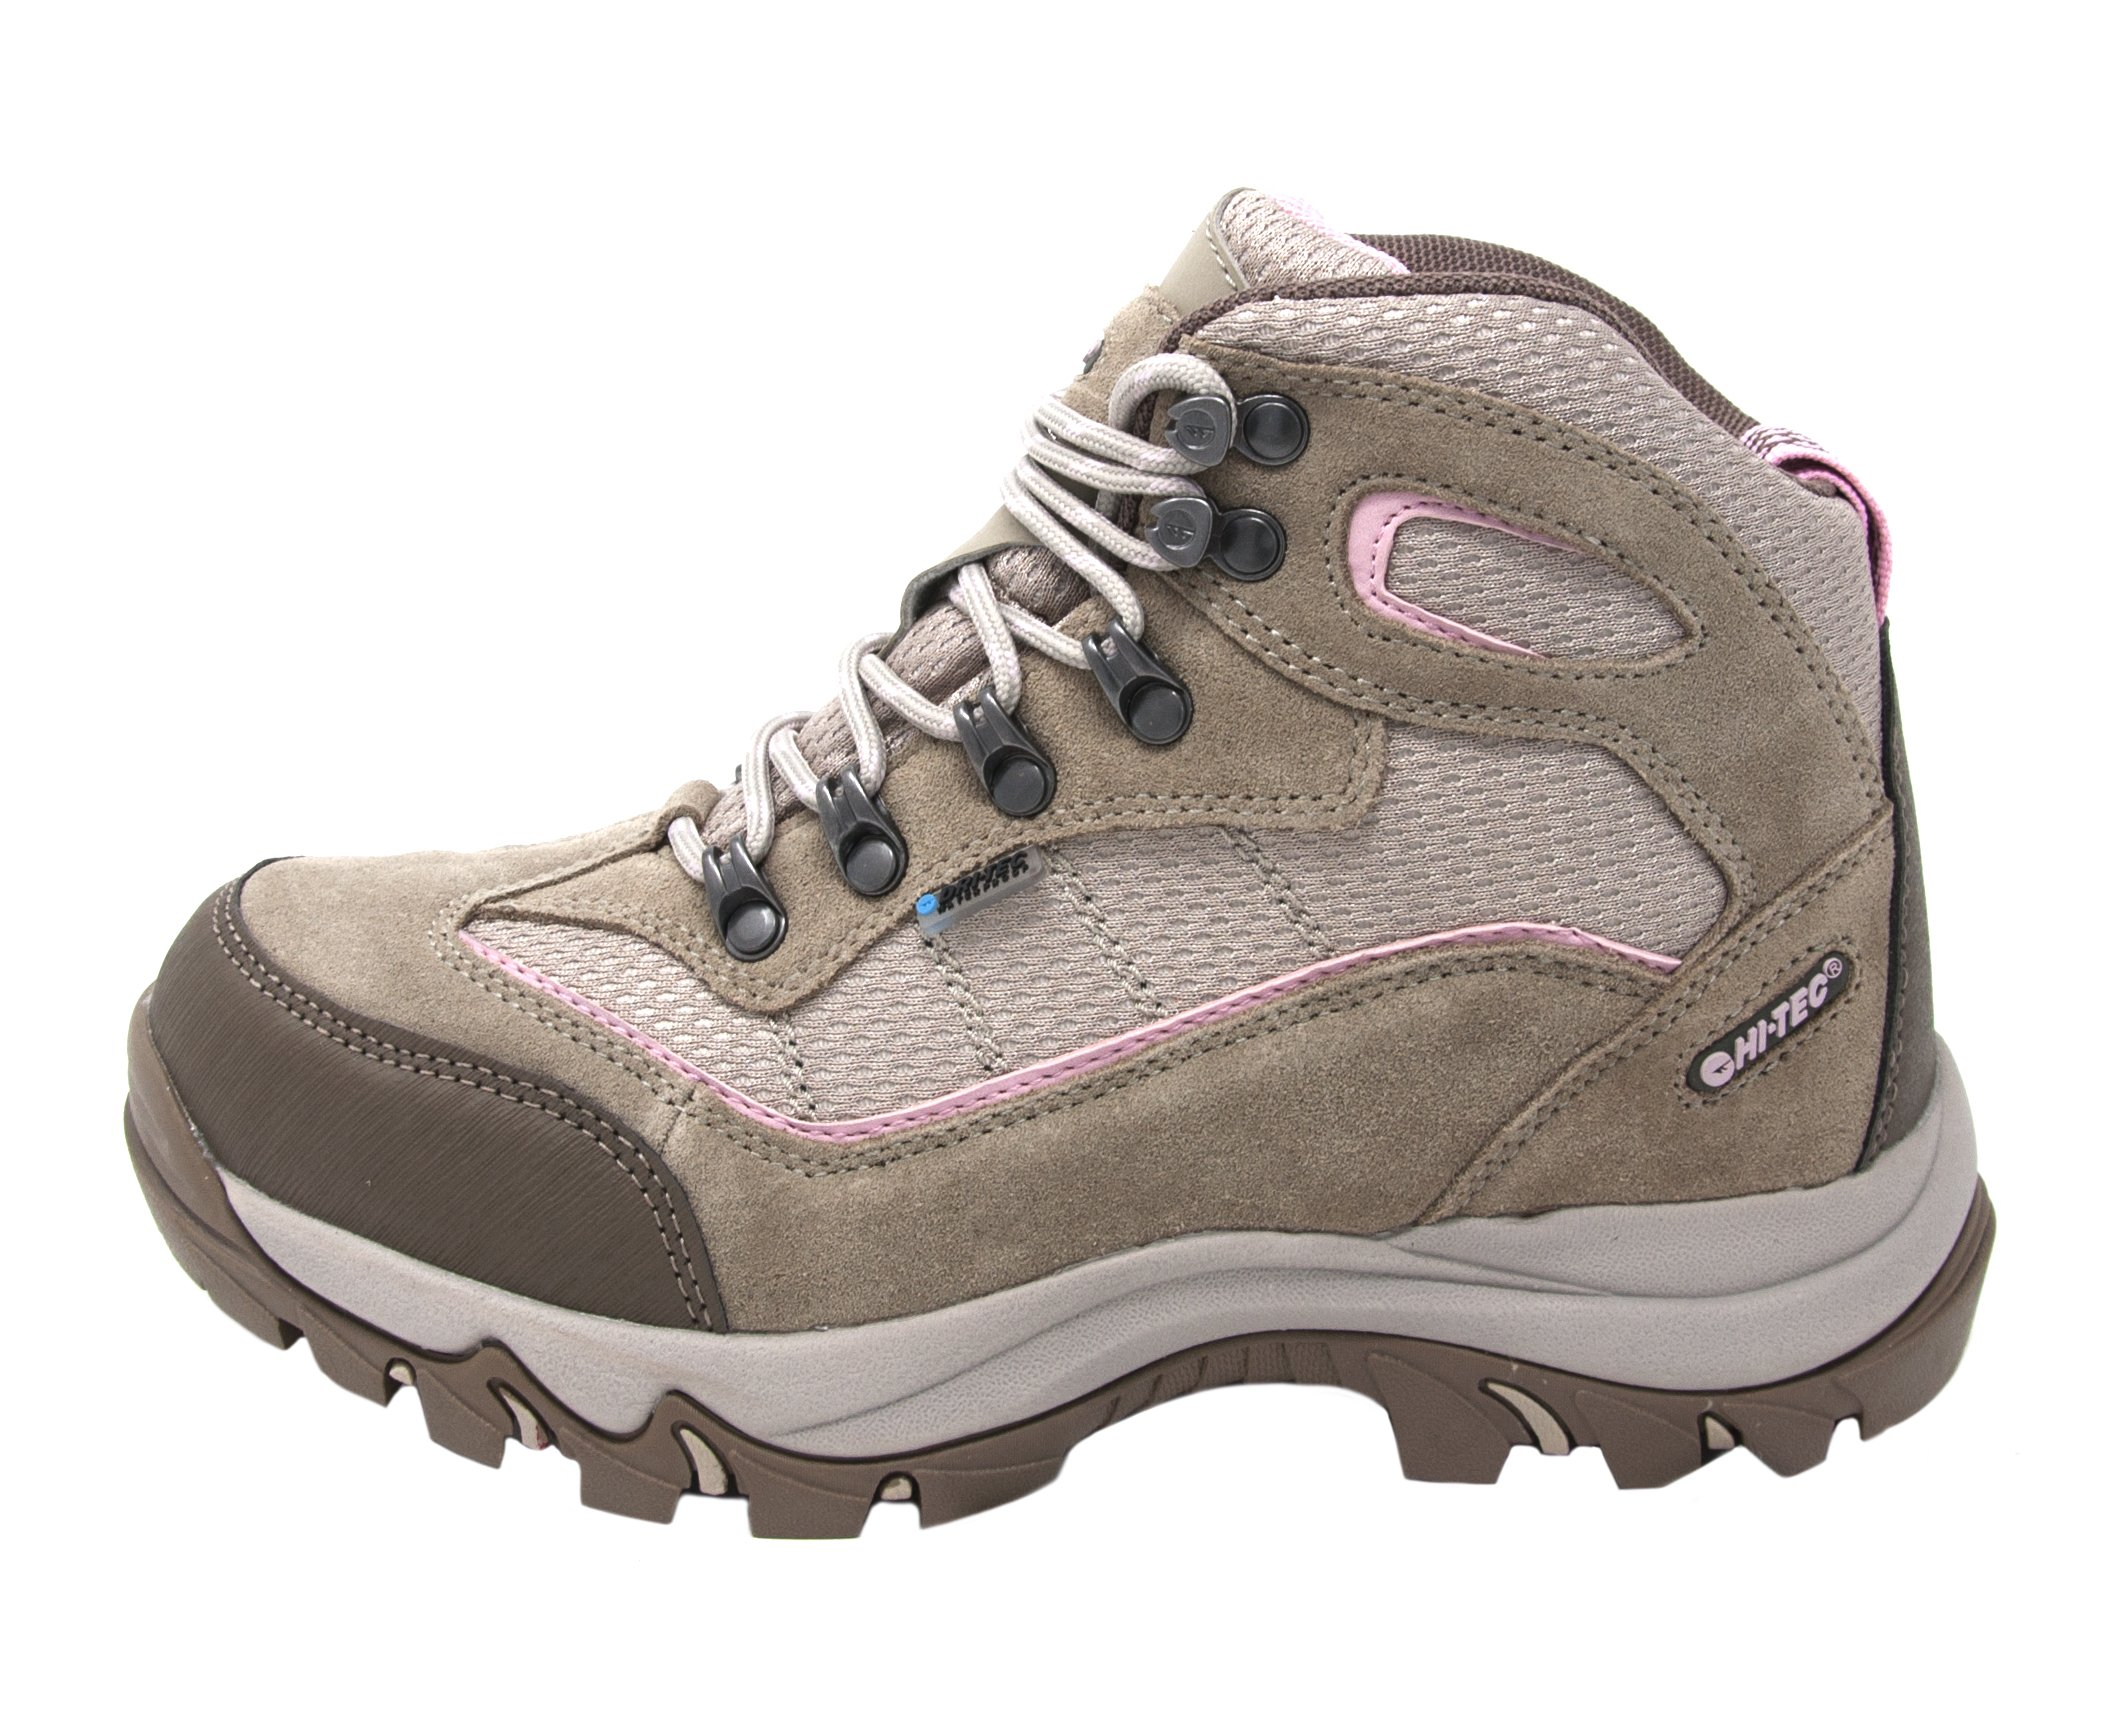 Hi-Tec Women's Skamania Mid-Rise Waterproof Hiking Boot, Natural/Pink, 10 by Hi-Tec